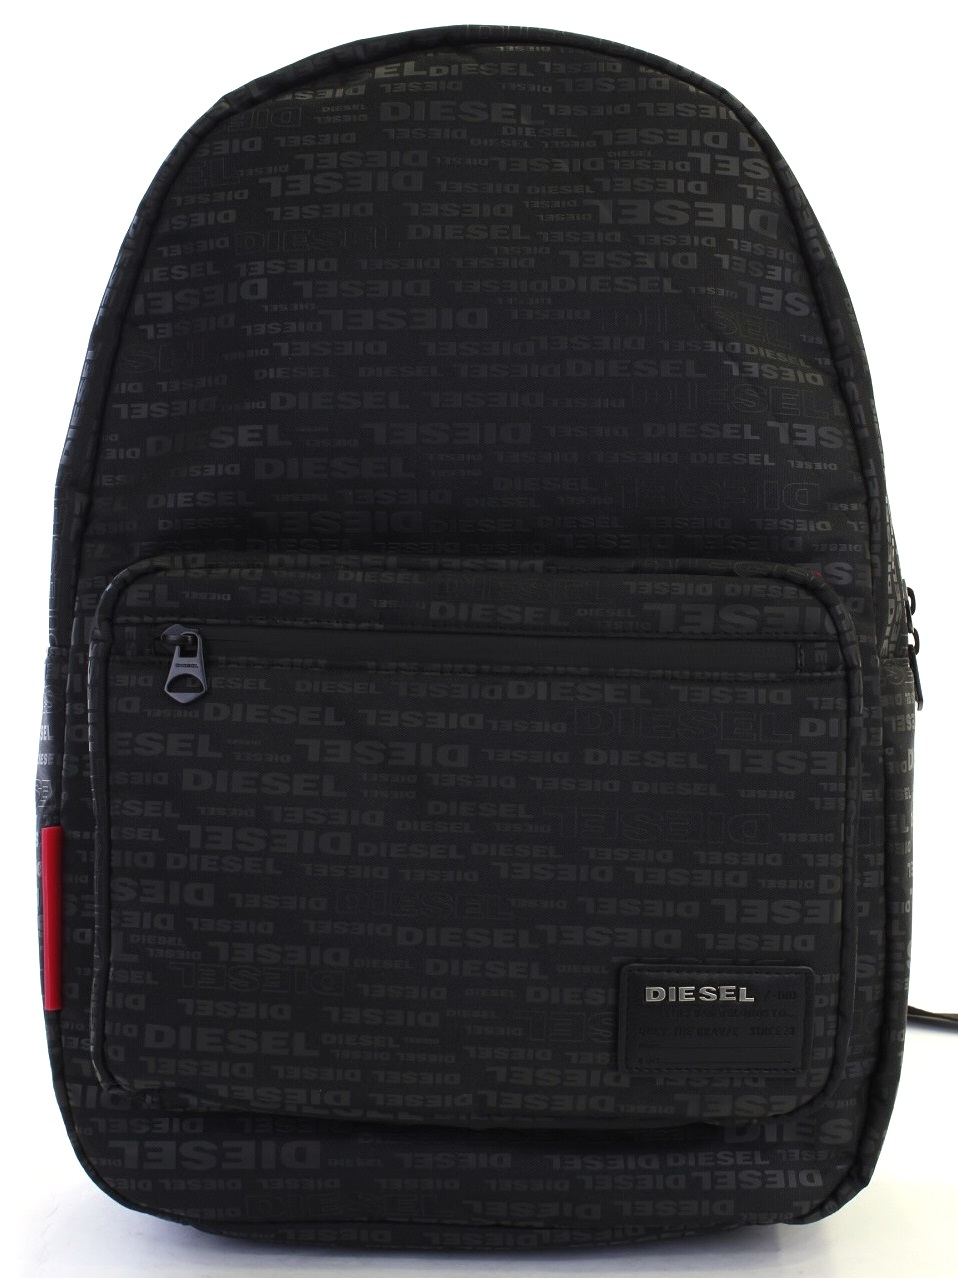 Backpack Diesel - 390 X04812